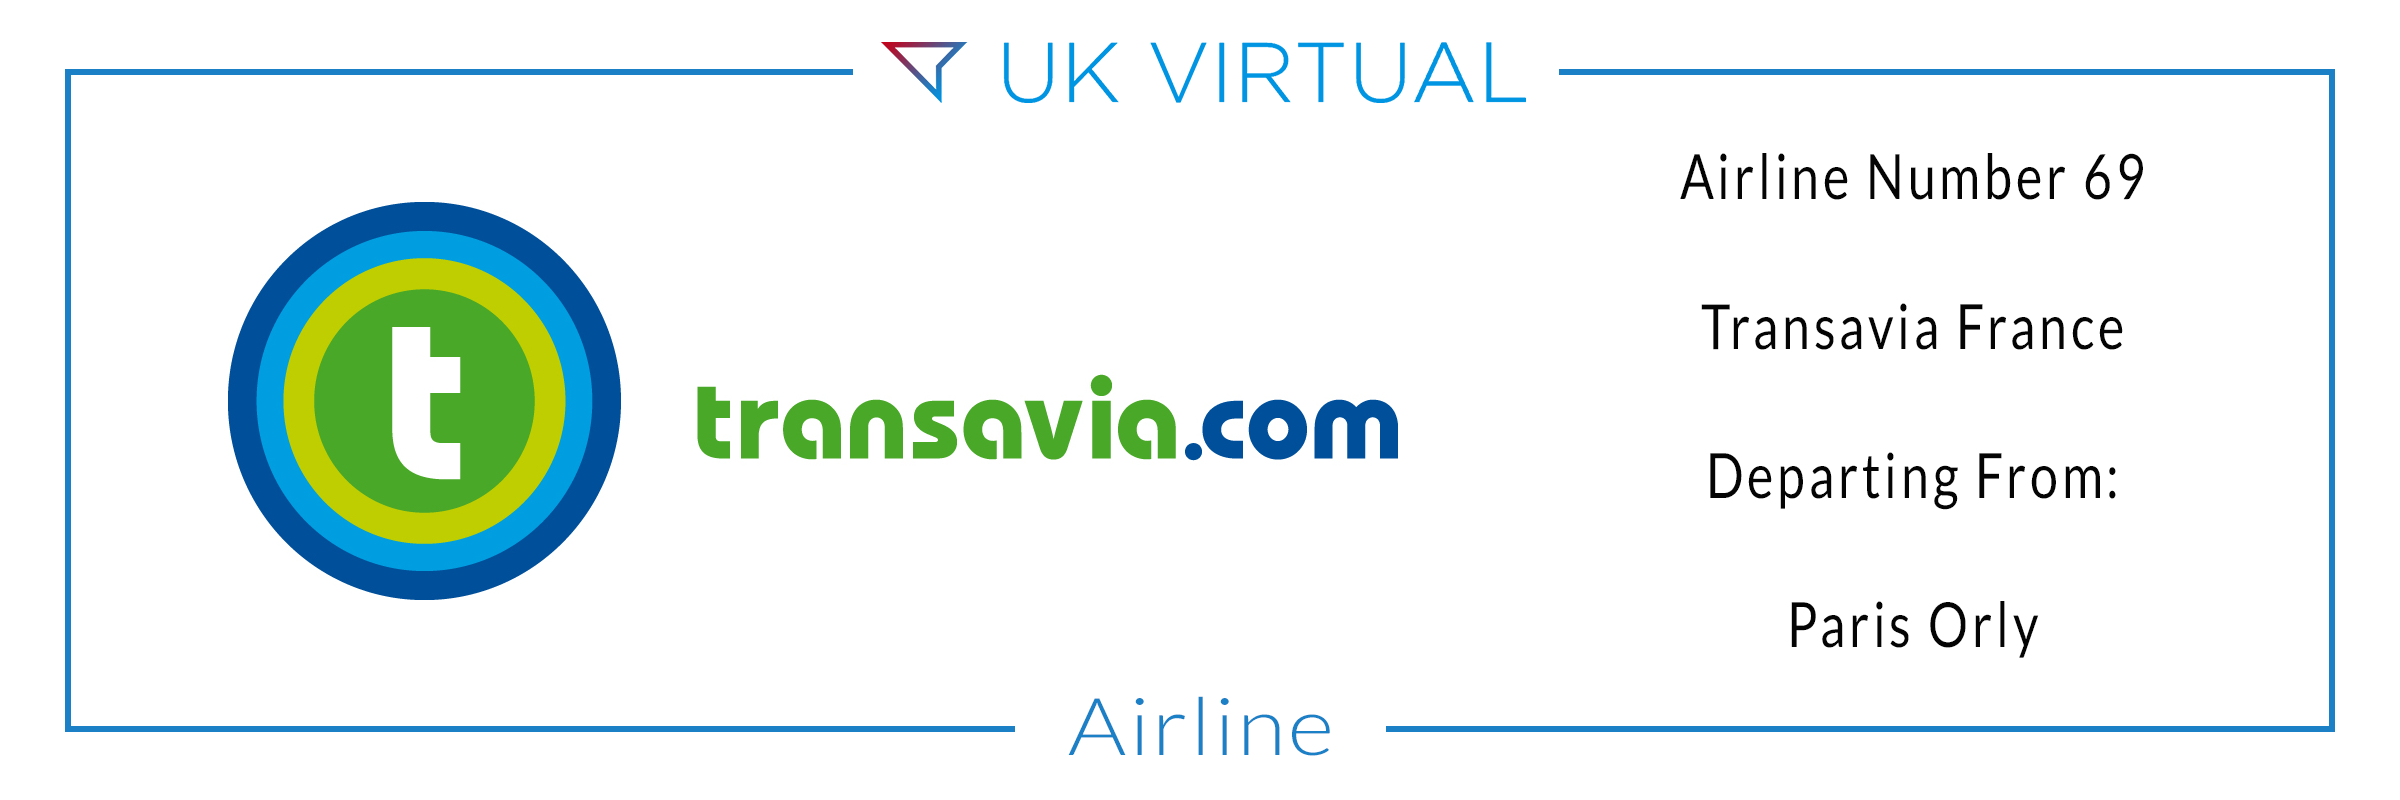 Airline Number 68: Transavia France